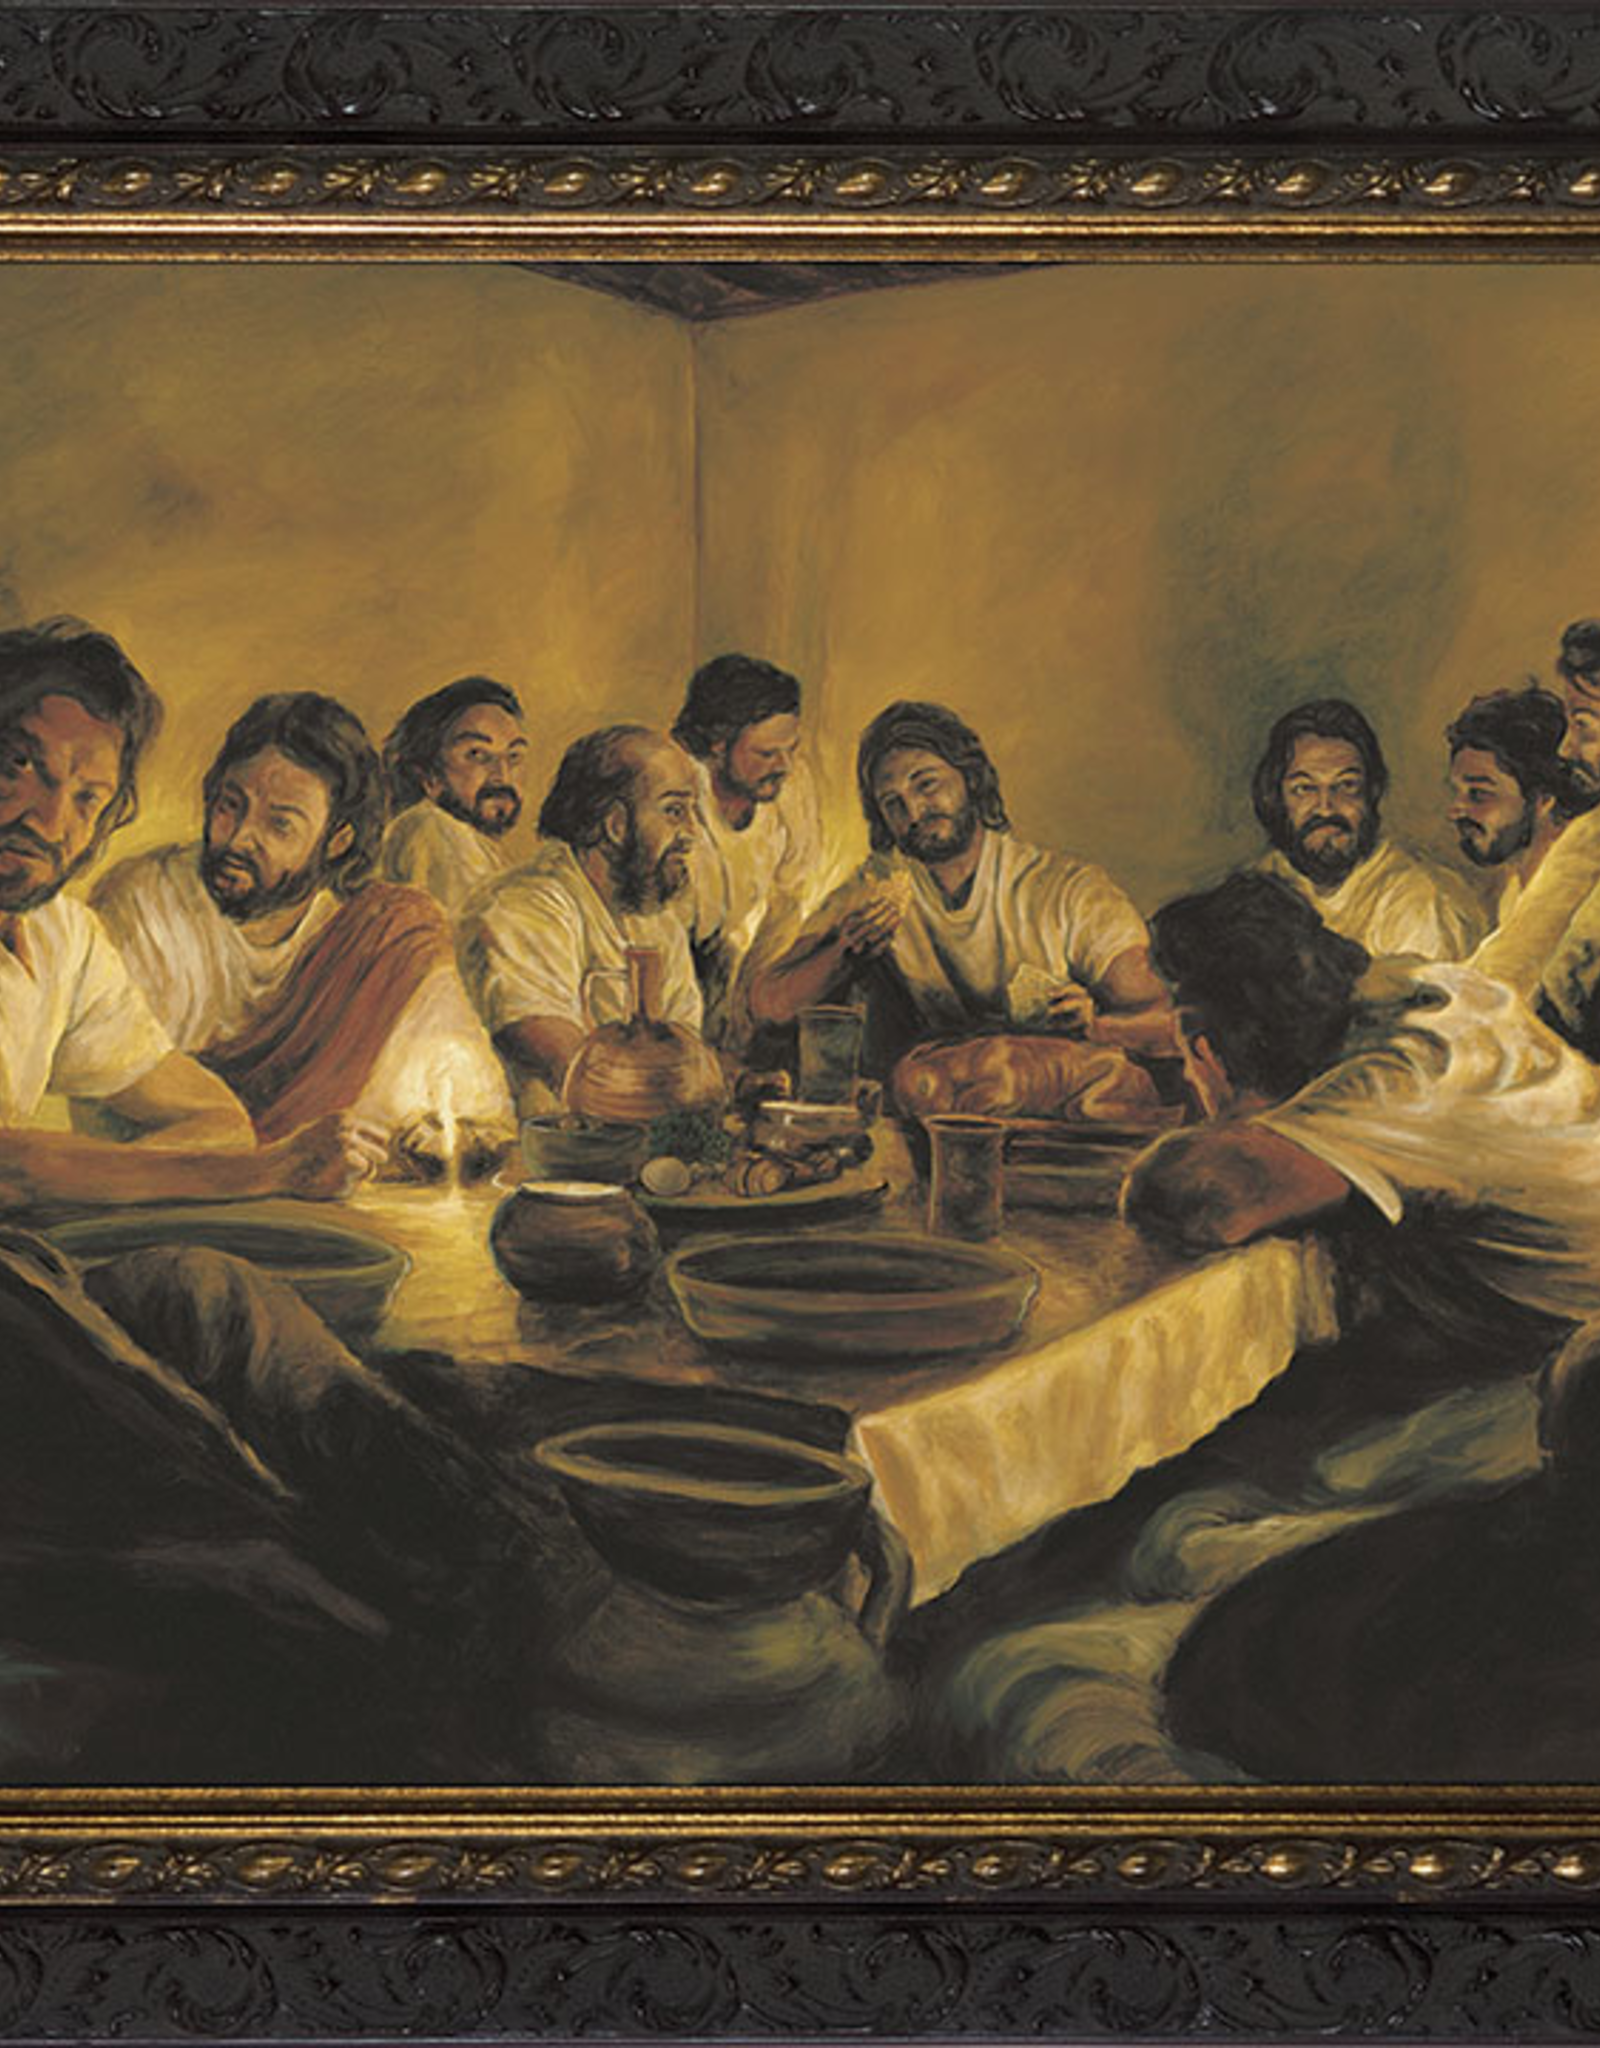 Nelson/Catholic to the Max The Last Supper by Jason Jenicke Framed Image in Ornate Dark Frame 12 x 9‰Û